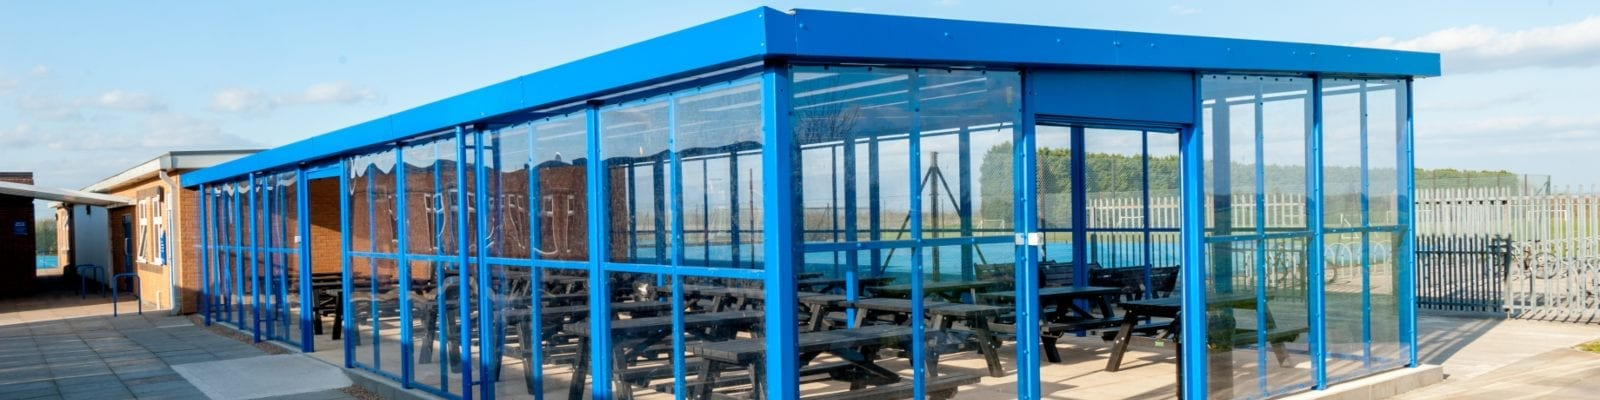 Outdoor Dining Shelter we made for Branston Academy